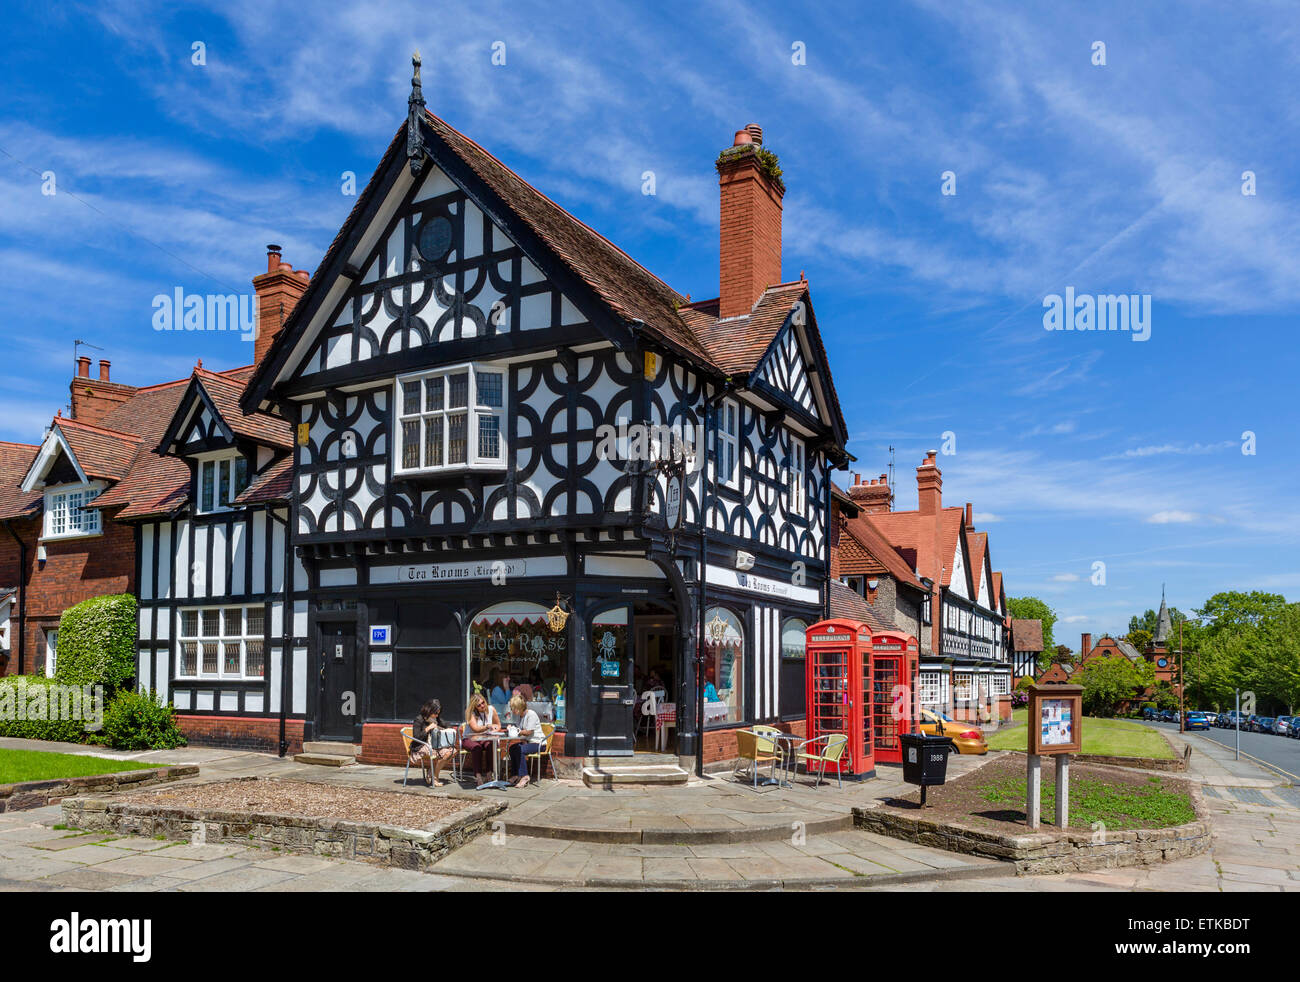 Tudor Rose Tea Rooms and houses in the model village of Port Sunlight, Wirral Peninsula, Merseyside, England, UK - Stock Image